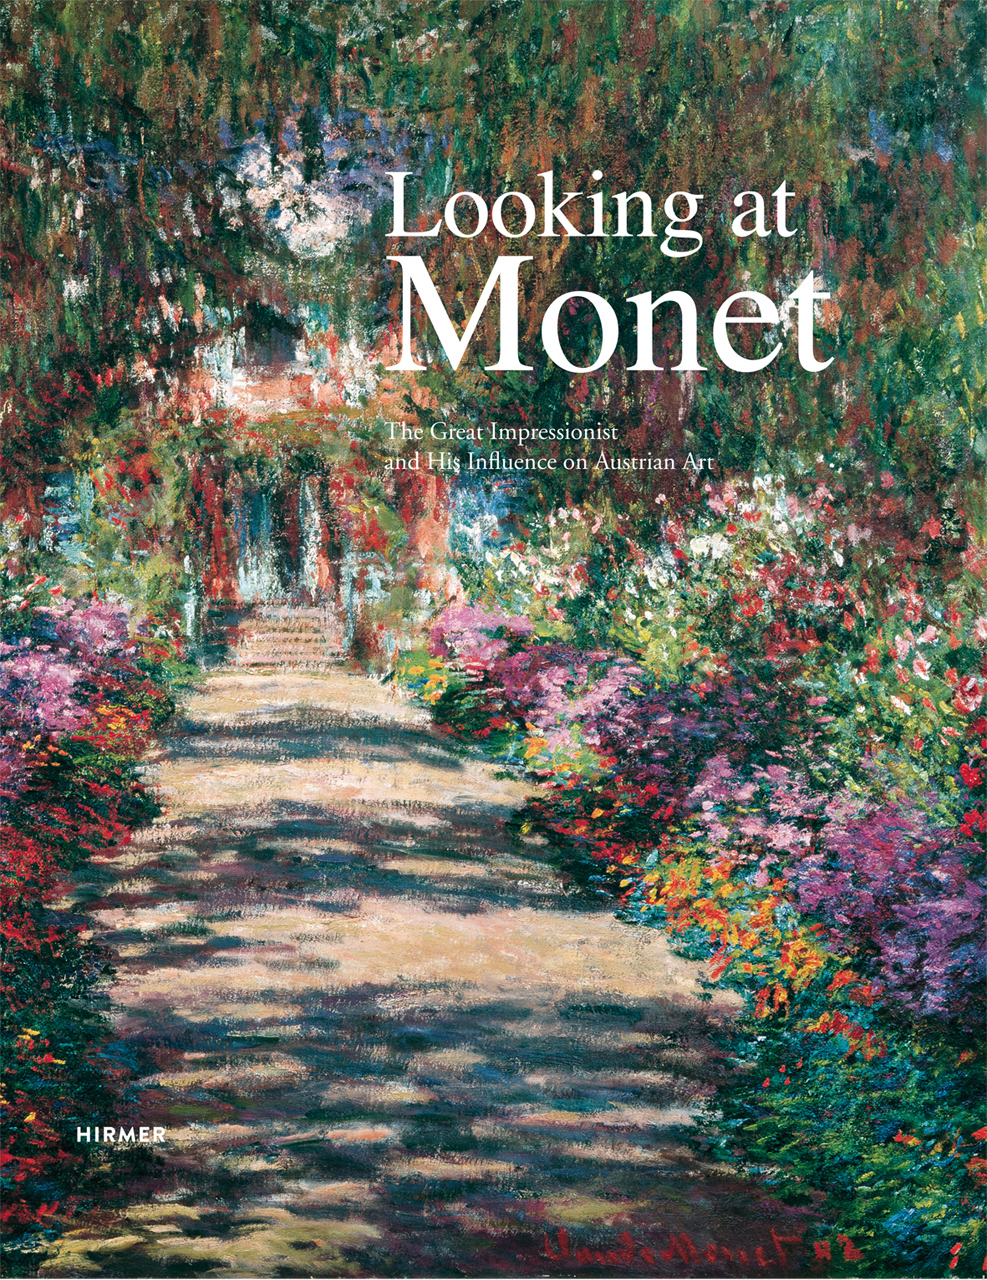 Looking at Monet: The Great Impressionist and His Influence on Austrian Art